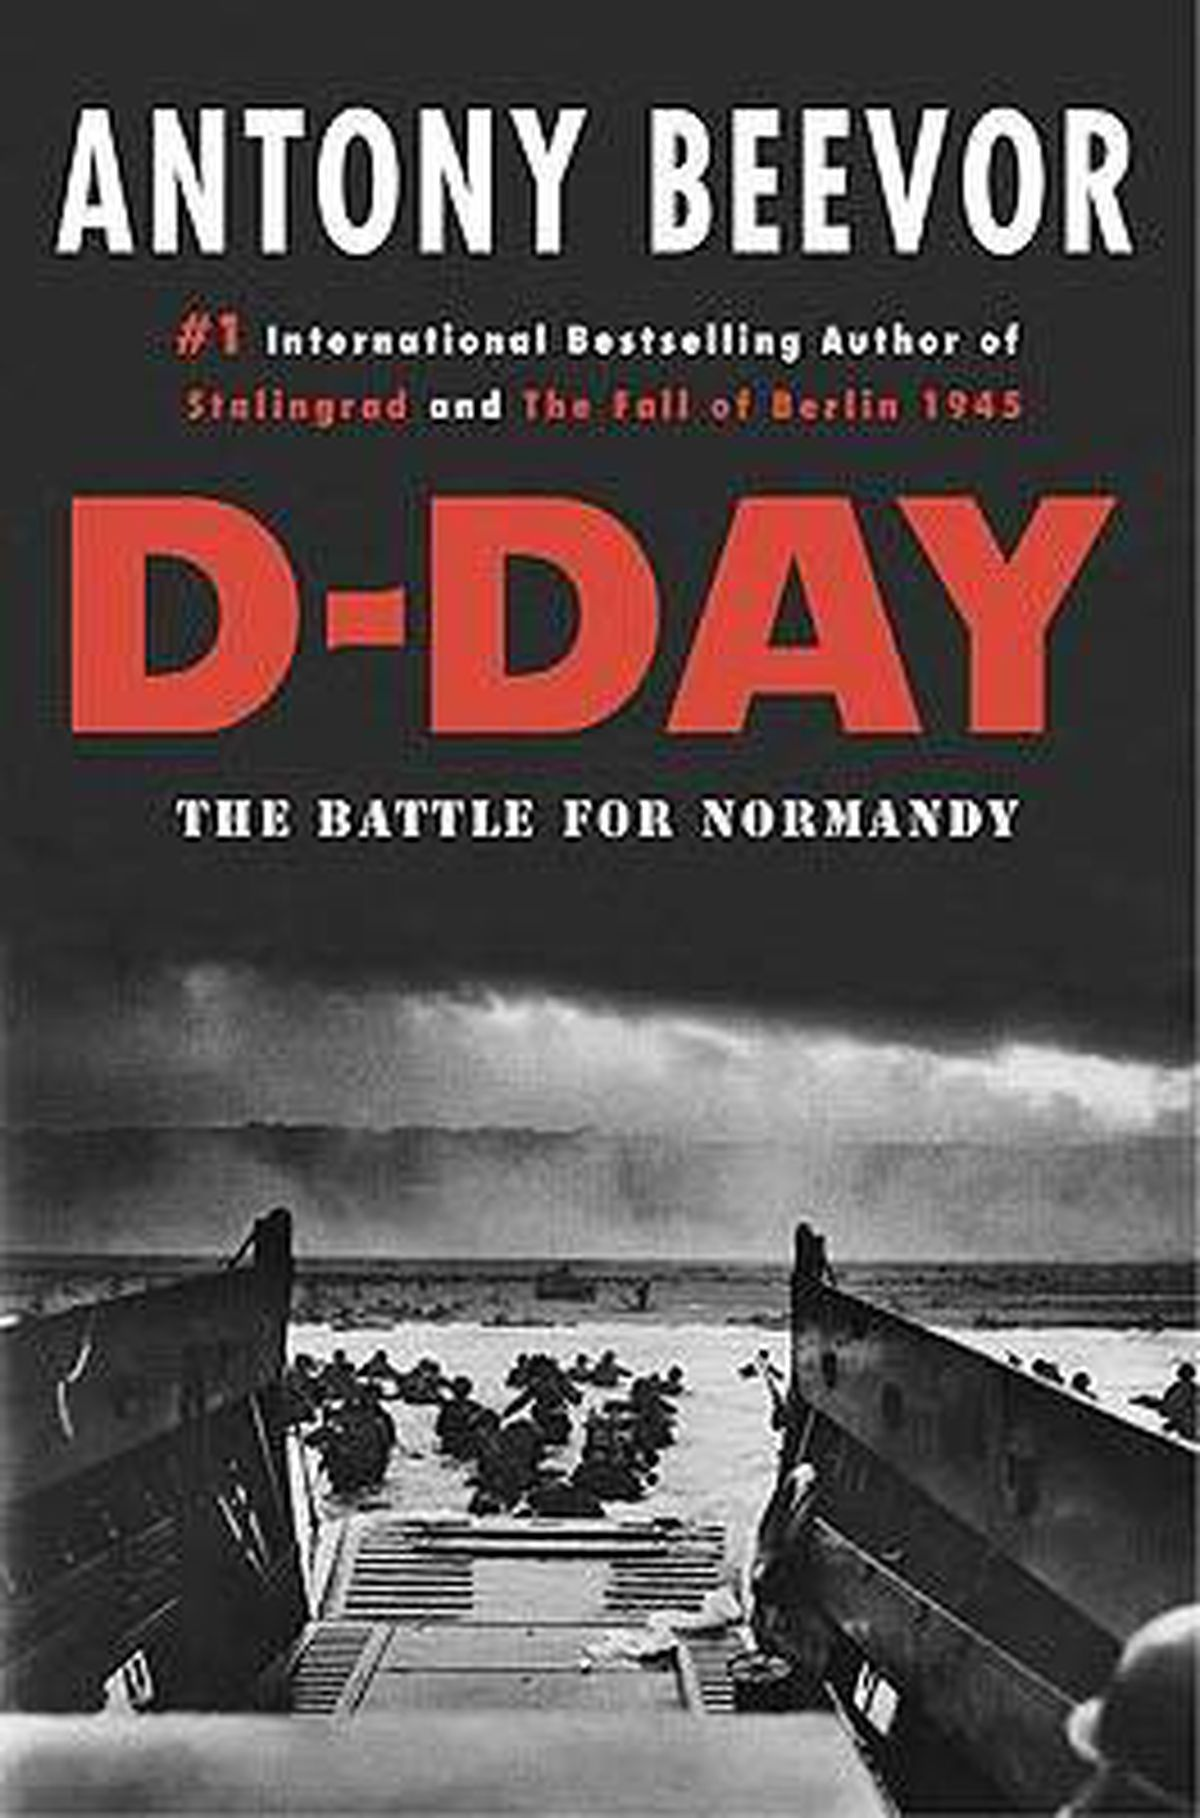 d day in normandy forever changed the course of the second world war And the course of western civilization was forever changed on october  had  been attached to the date of every planned offensive of world war ii  in fact, the  aspect of the normandy invasion that sets it apart from all other.